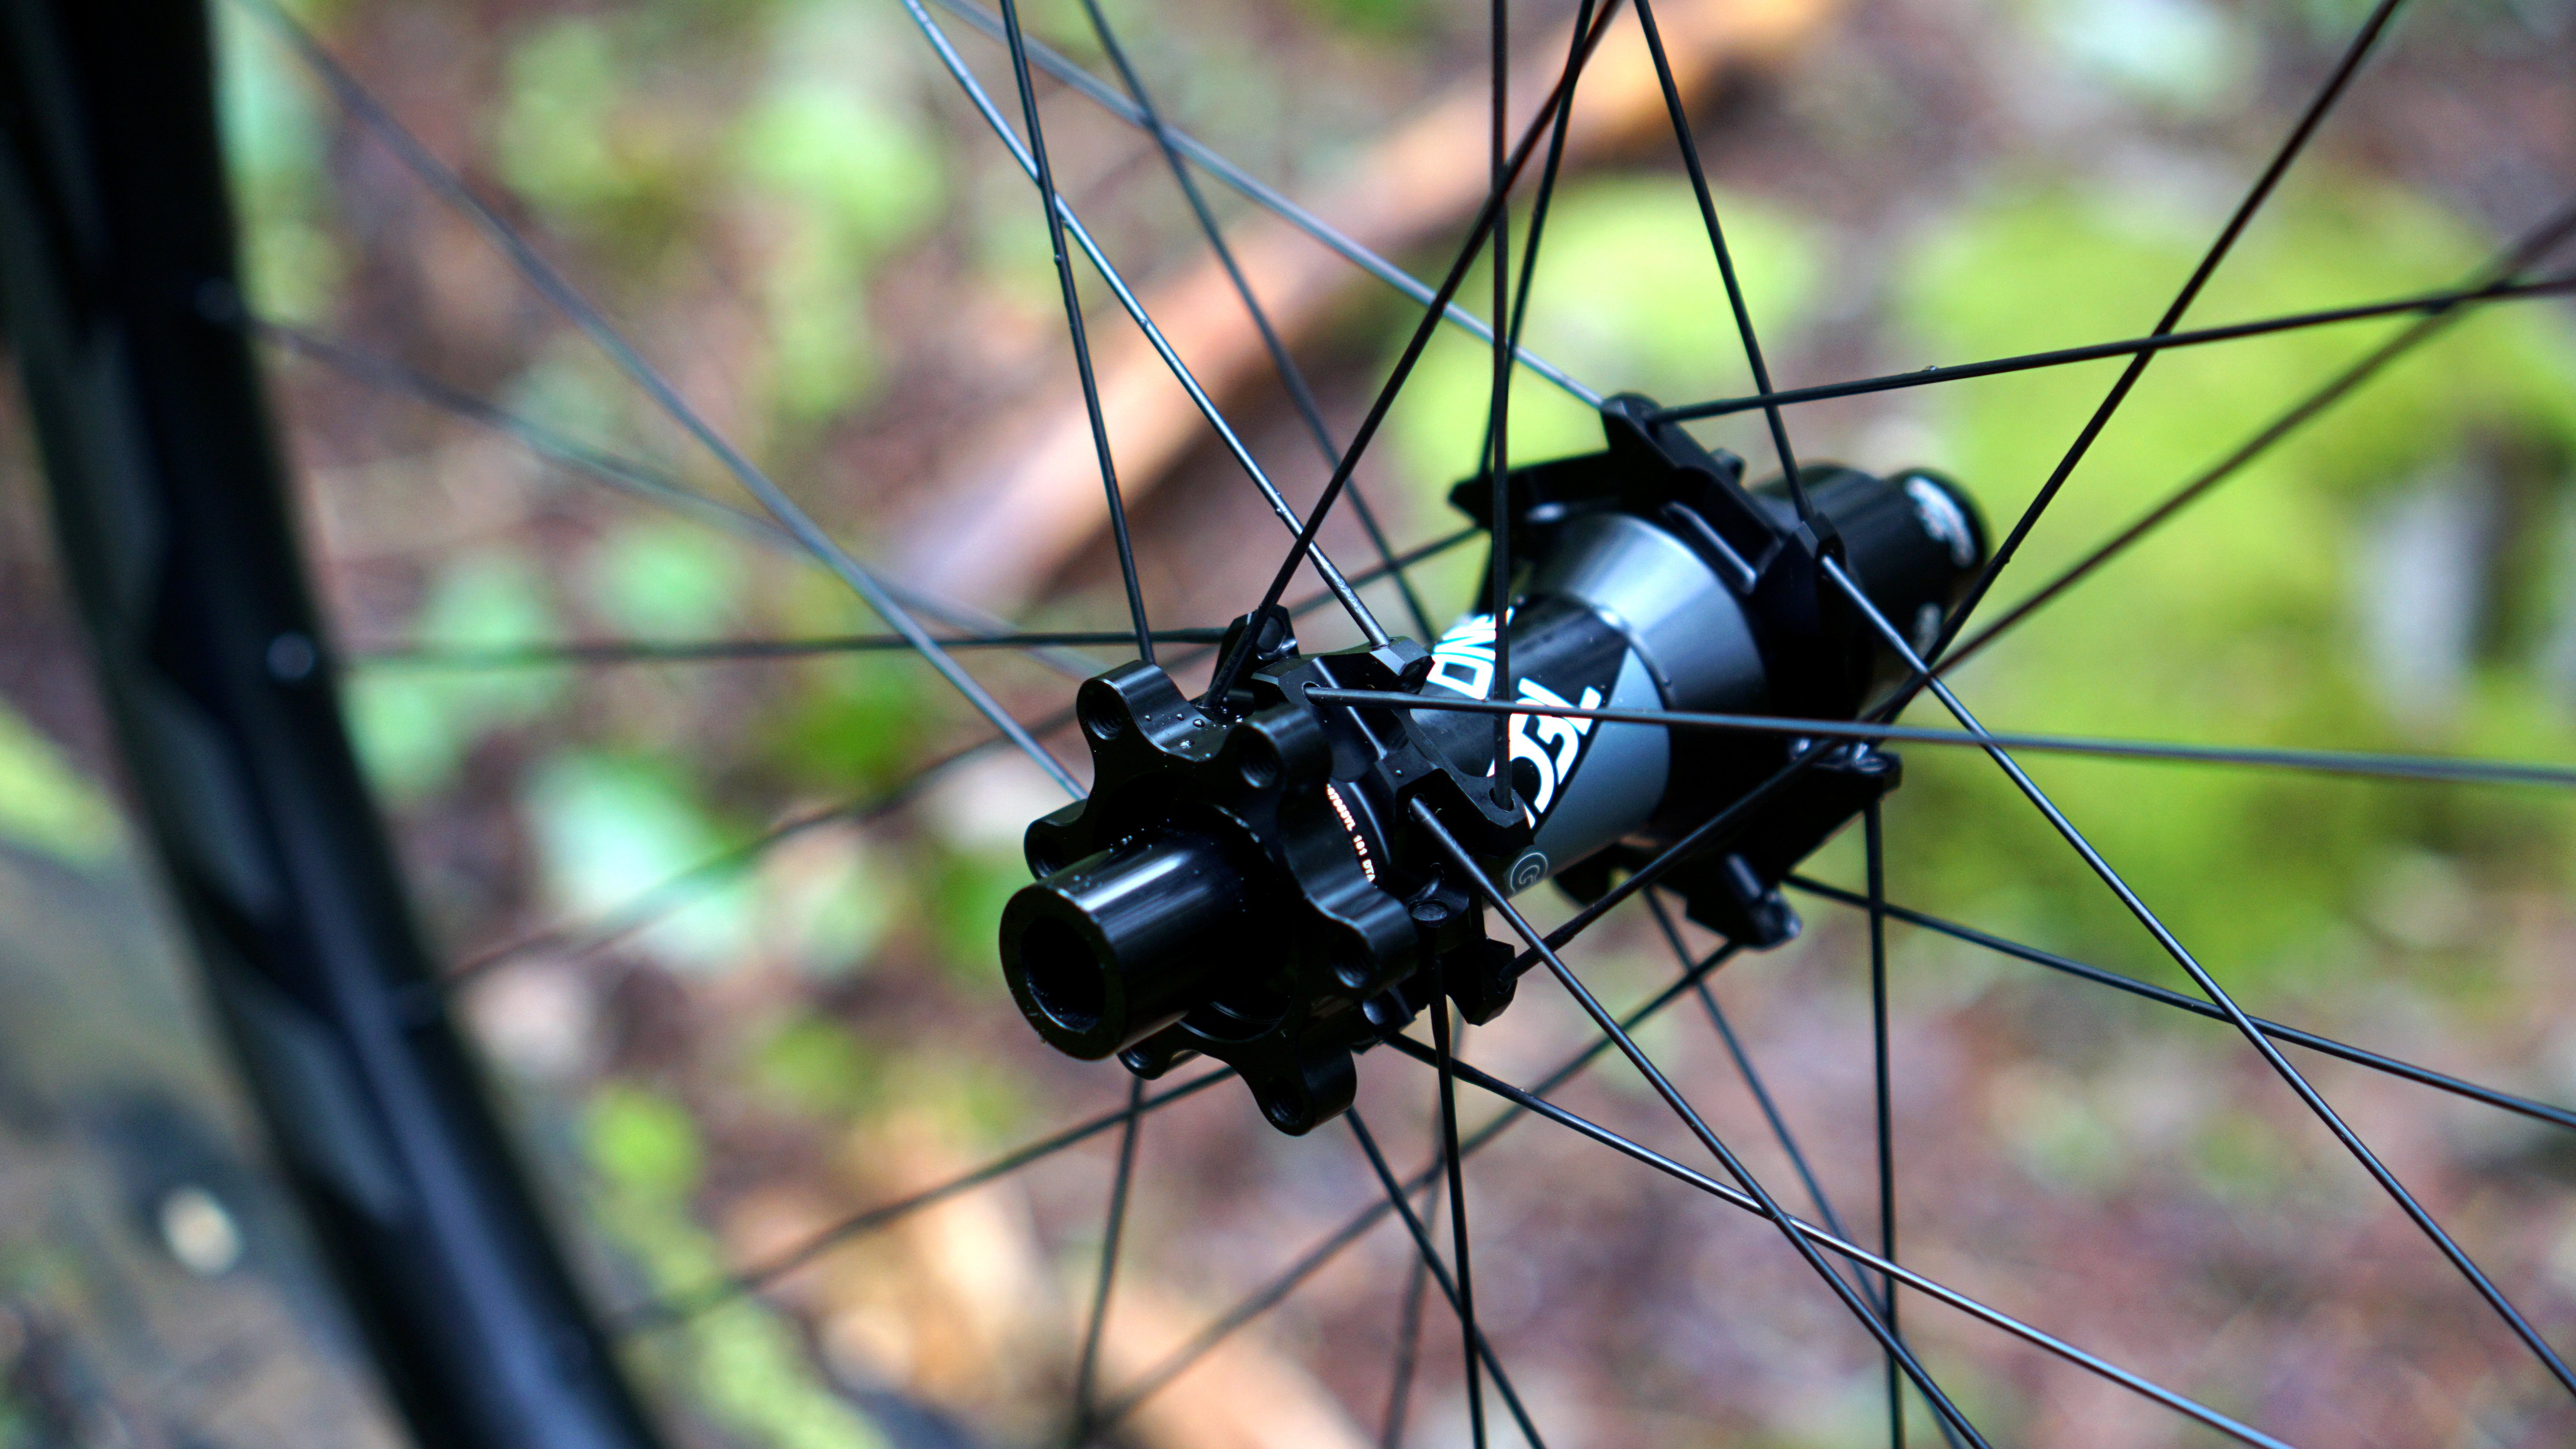 Giant_TRX0_Rear_Hub_Disc_Side.JPG